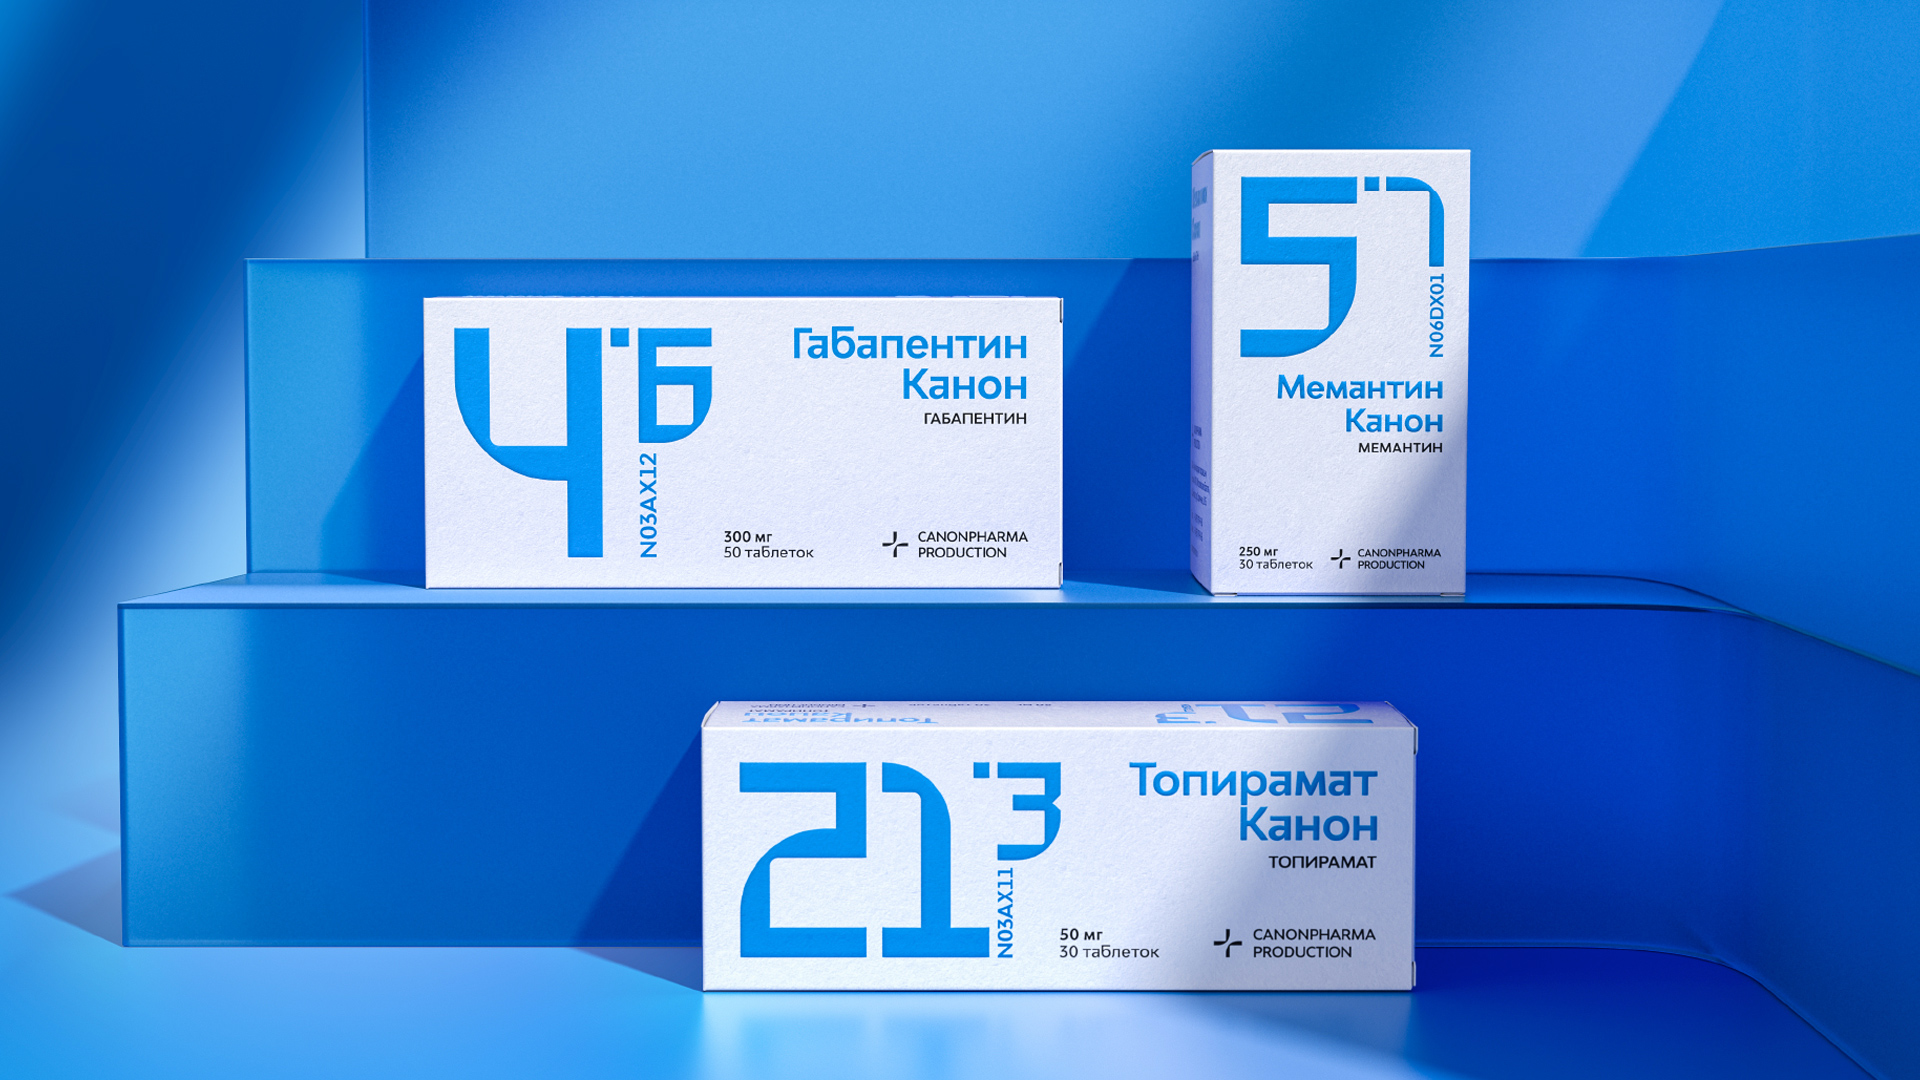 Packaging Design for All the Canonpharma's Generic Drugs by Repina Branding